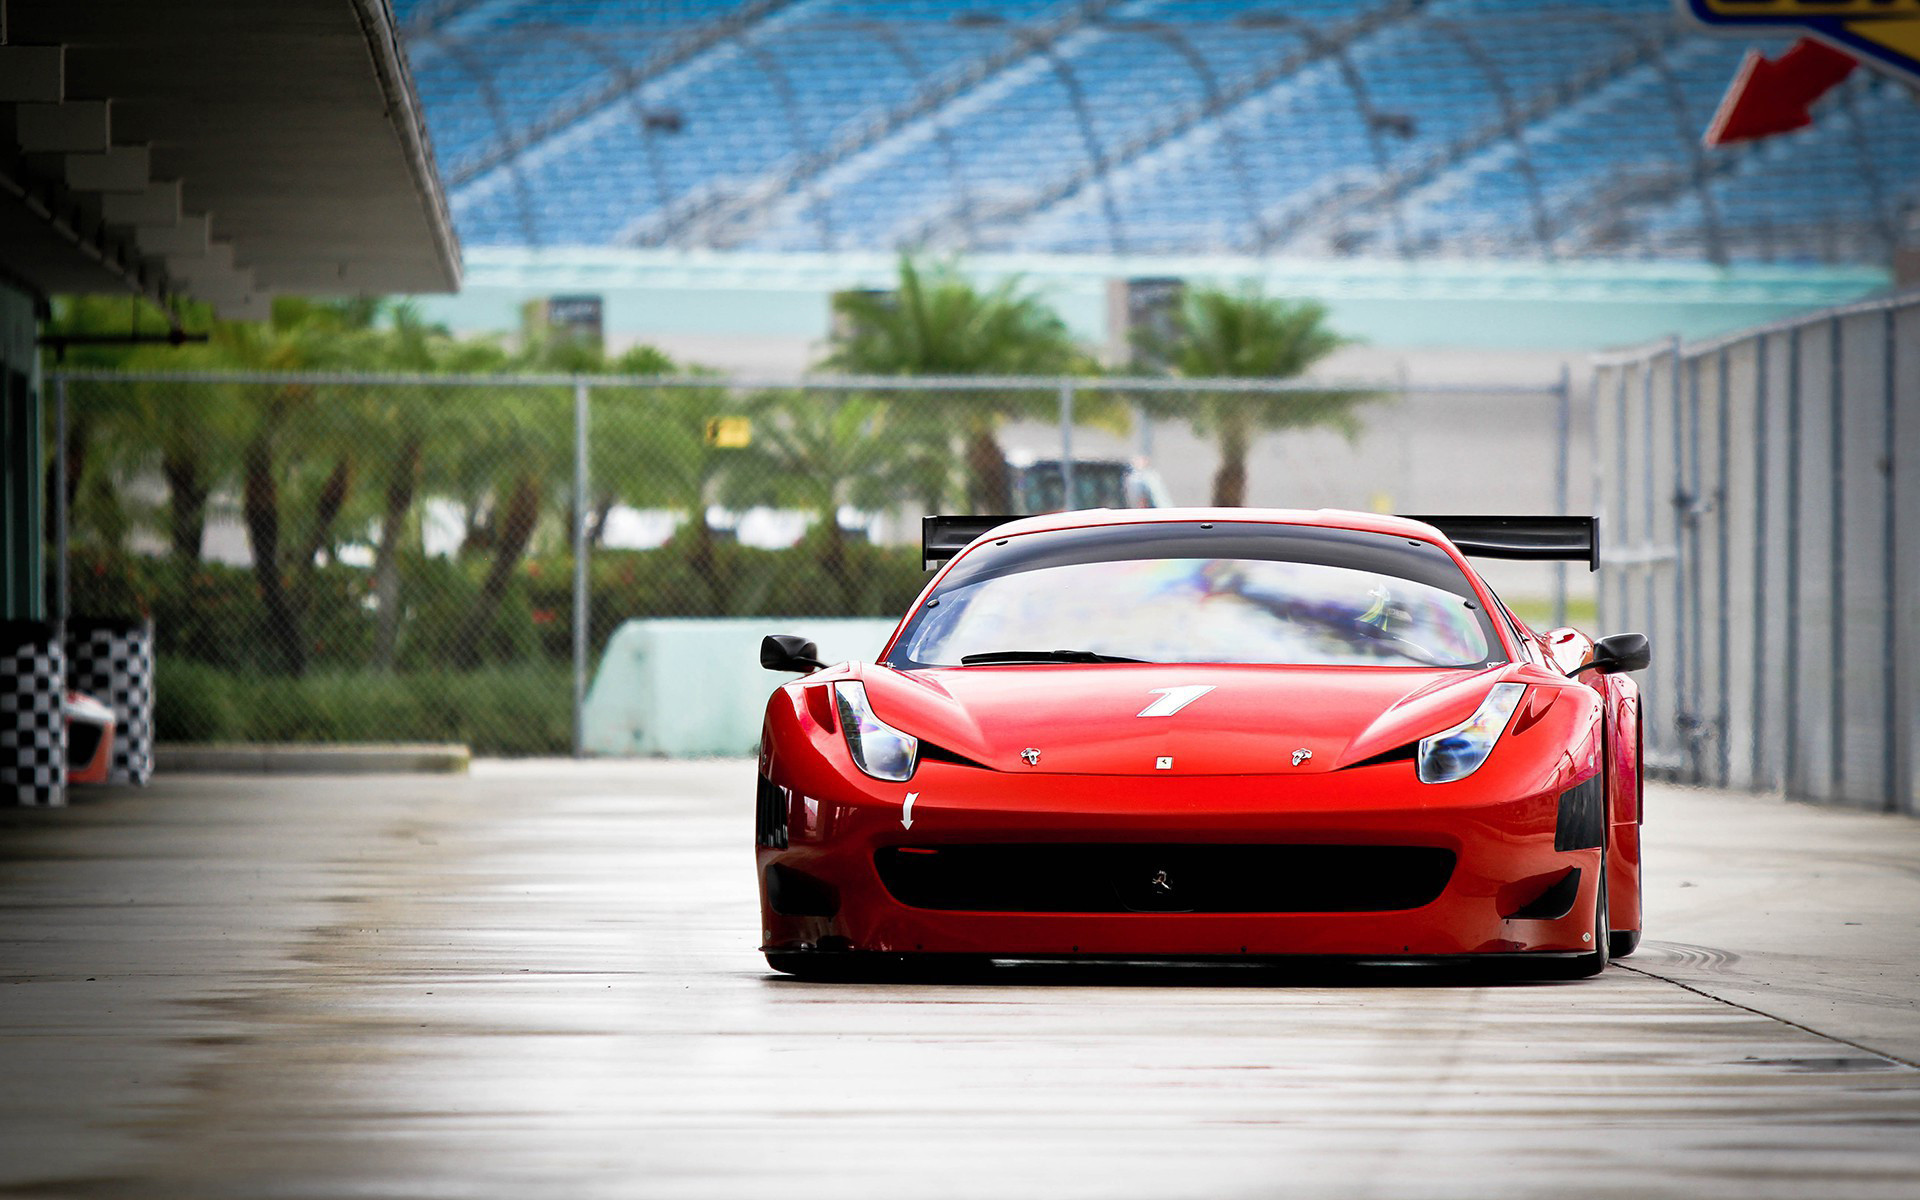 Hd Ferrari Wallpapers 1920x1200 ① Wallpapertag